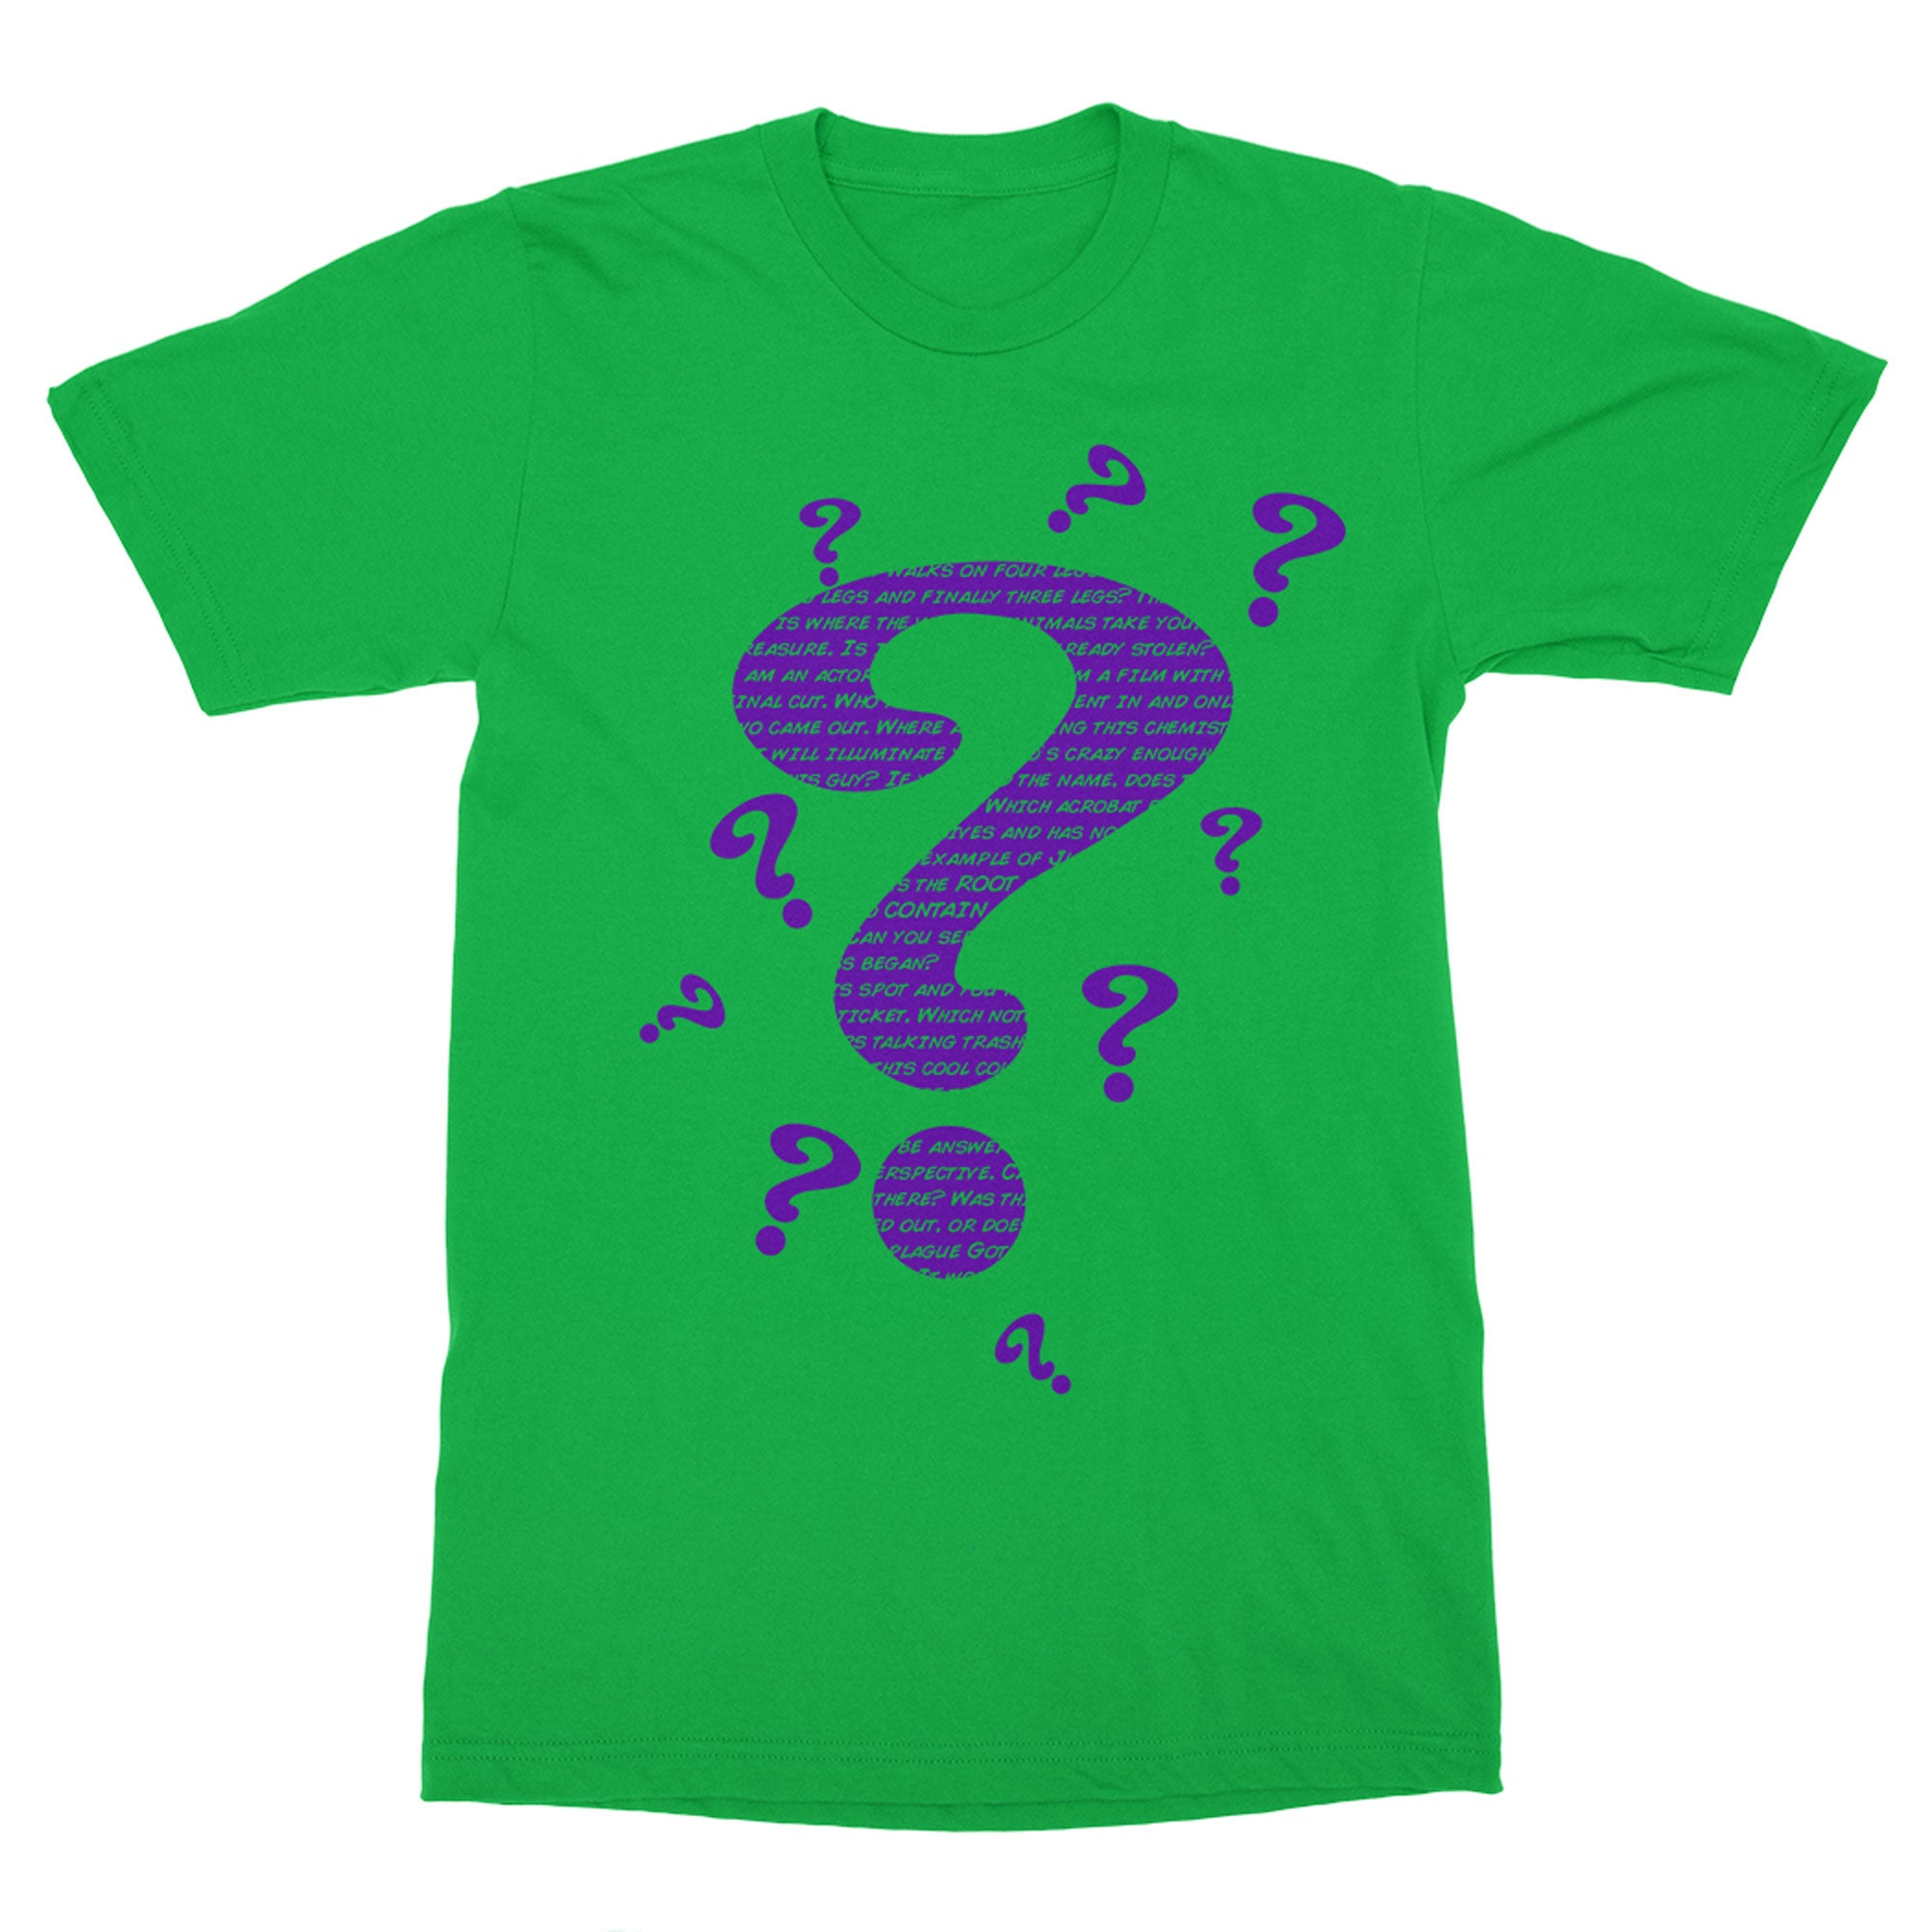 Mind Bender Shirt-T-Shirts-Shirtasaurus-Premium-XS-Heather Kelly Green-Shirtasaurus